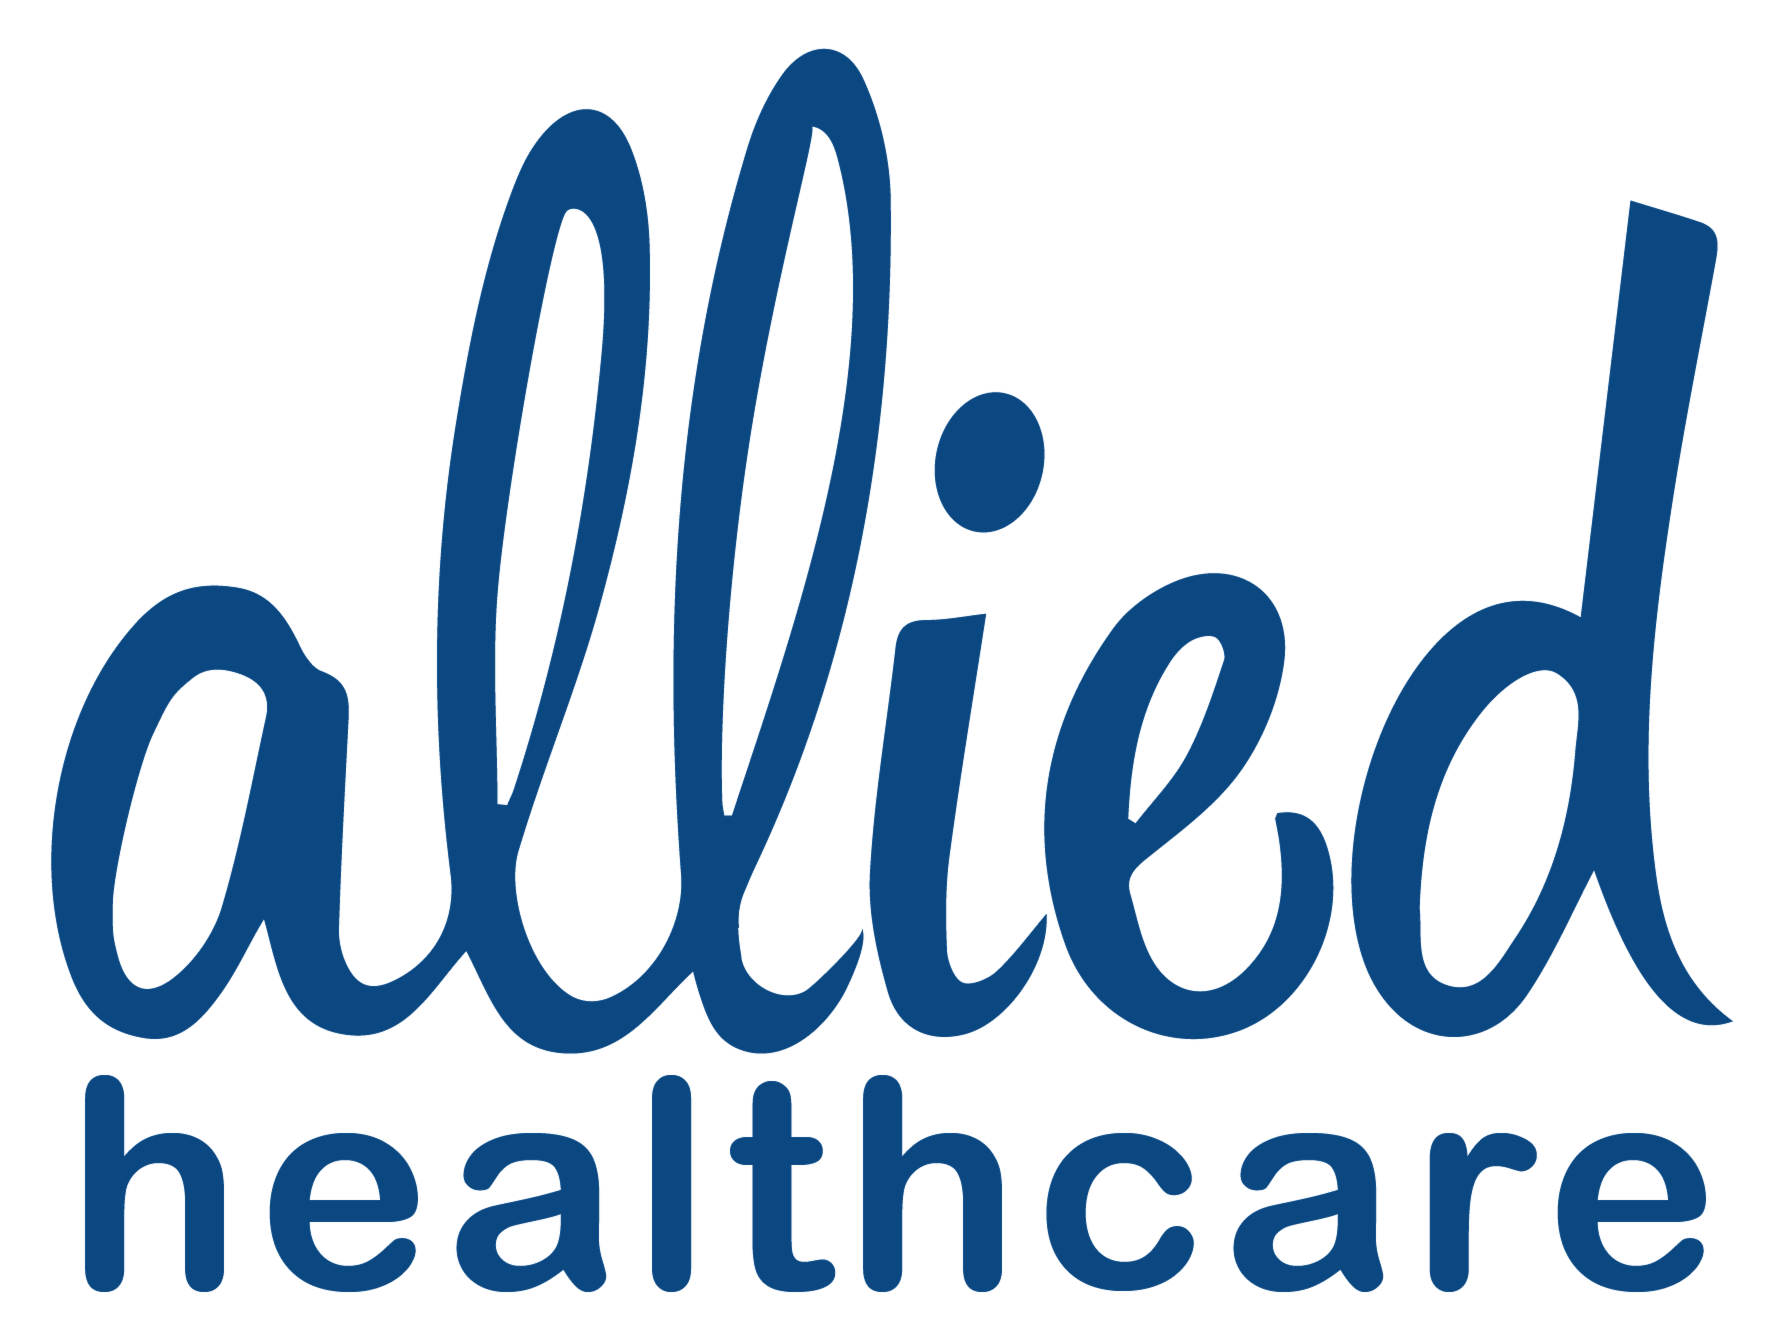 Allied Healthcare Group Ltd